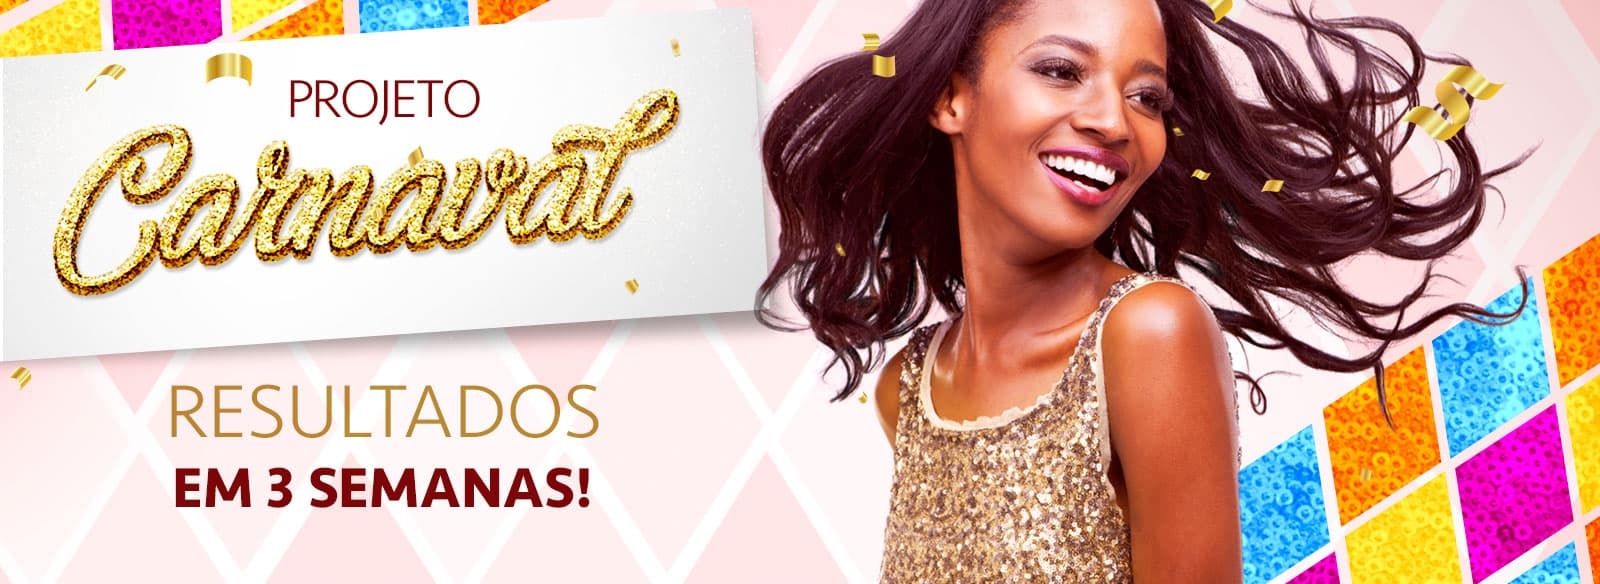 Banner_site_projeto_carnaval (1)